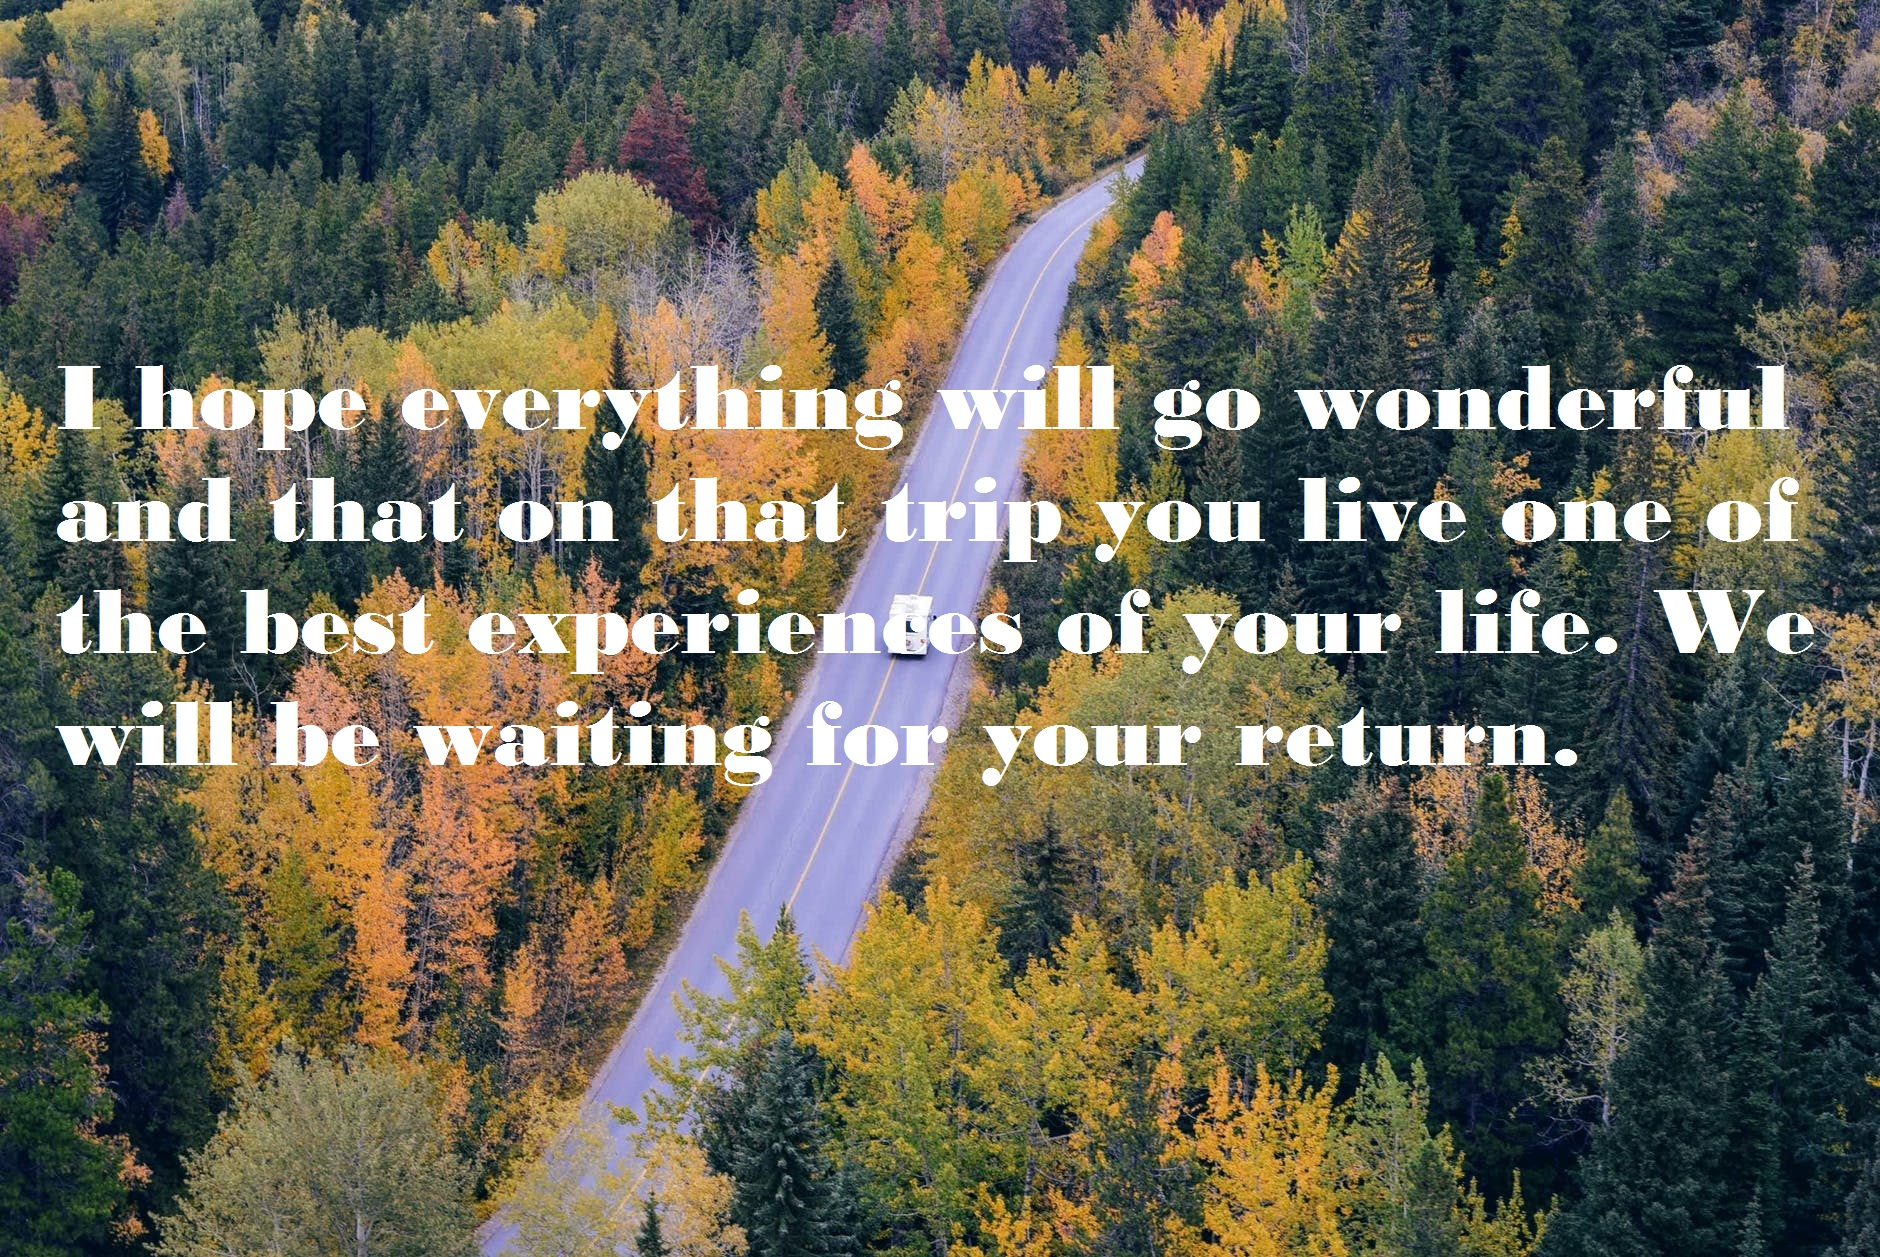 Good Wishes for Journey